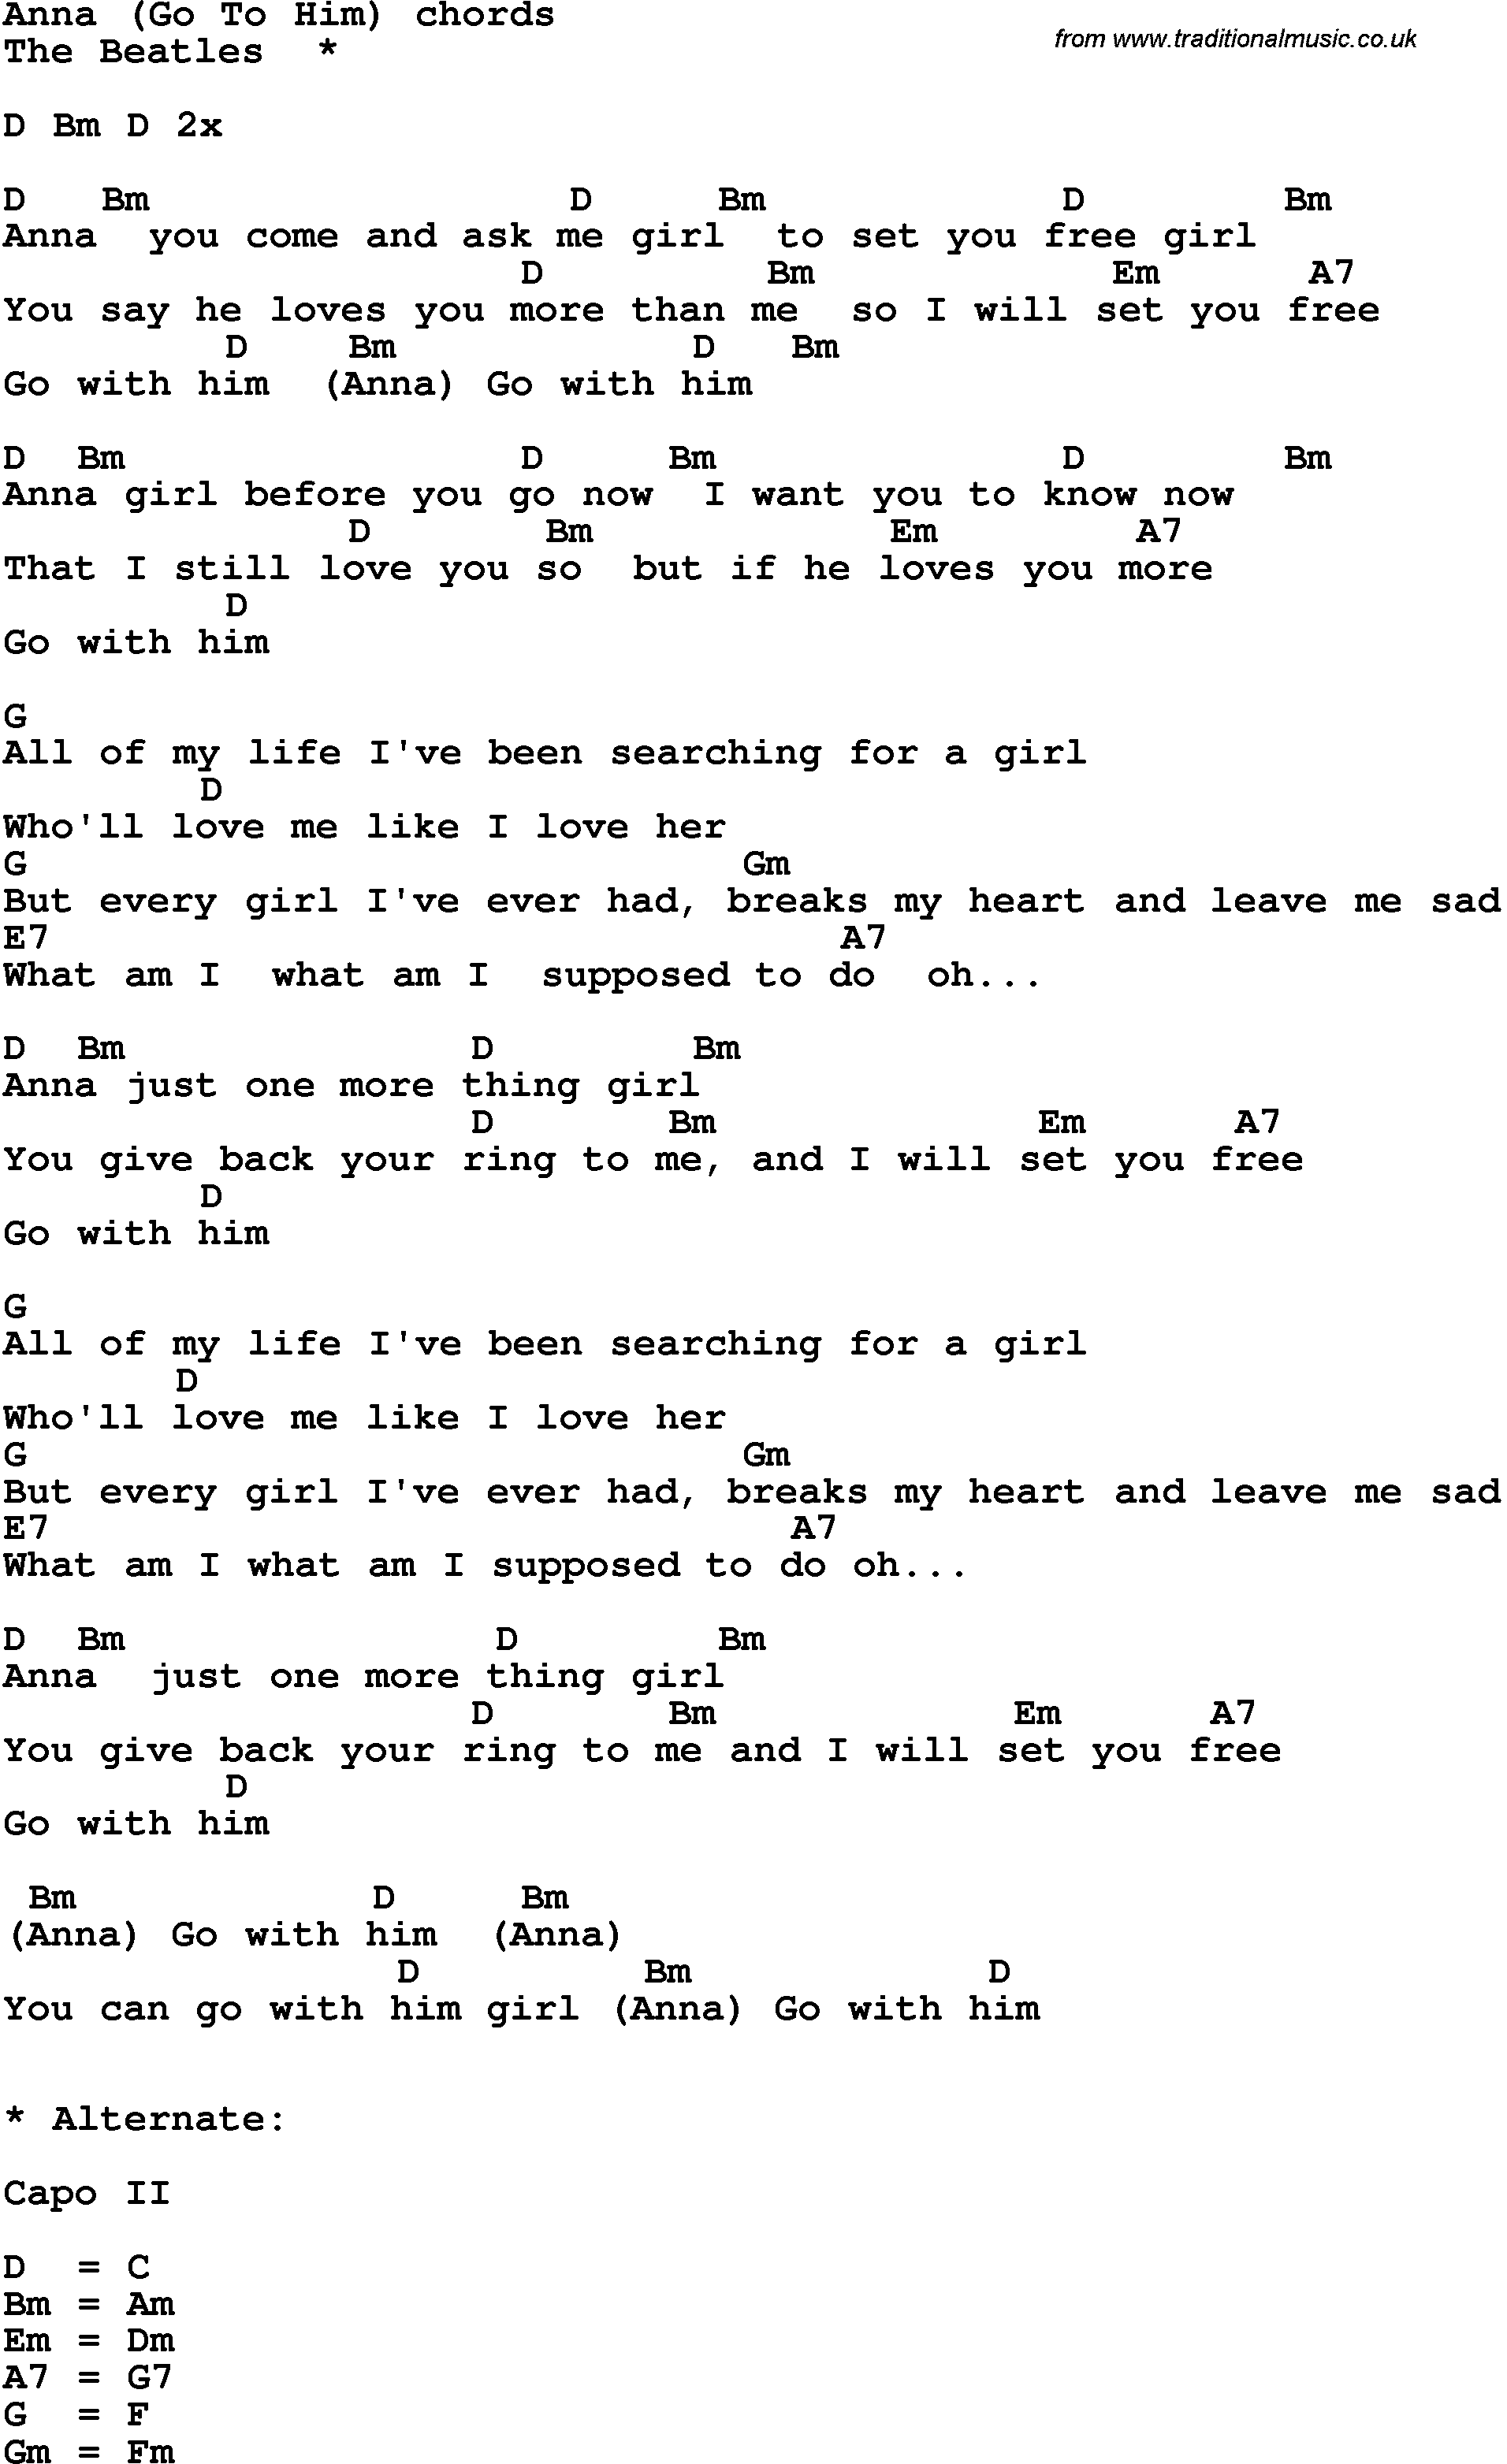 Song lyrics with guitar chords for anna the beatles song lyrics with guitar chords for anna the beatles hexwebz Images